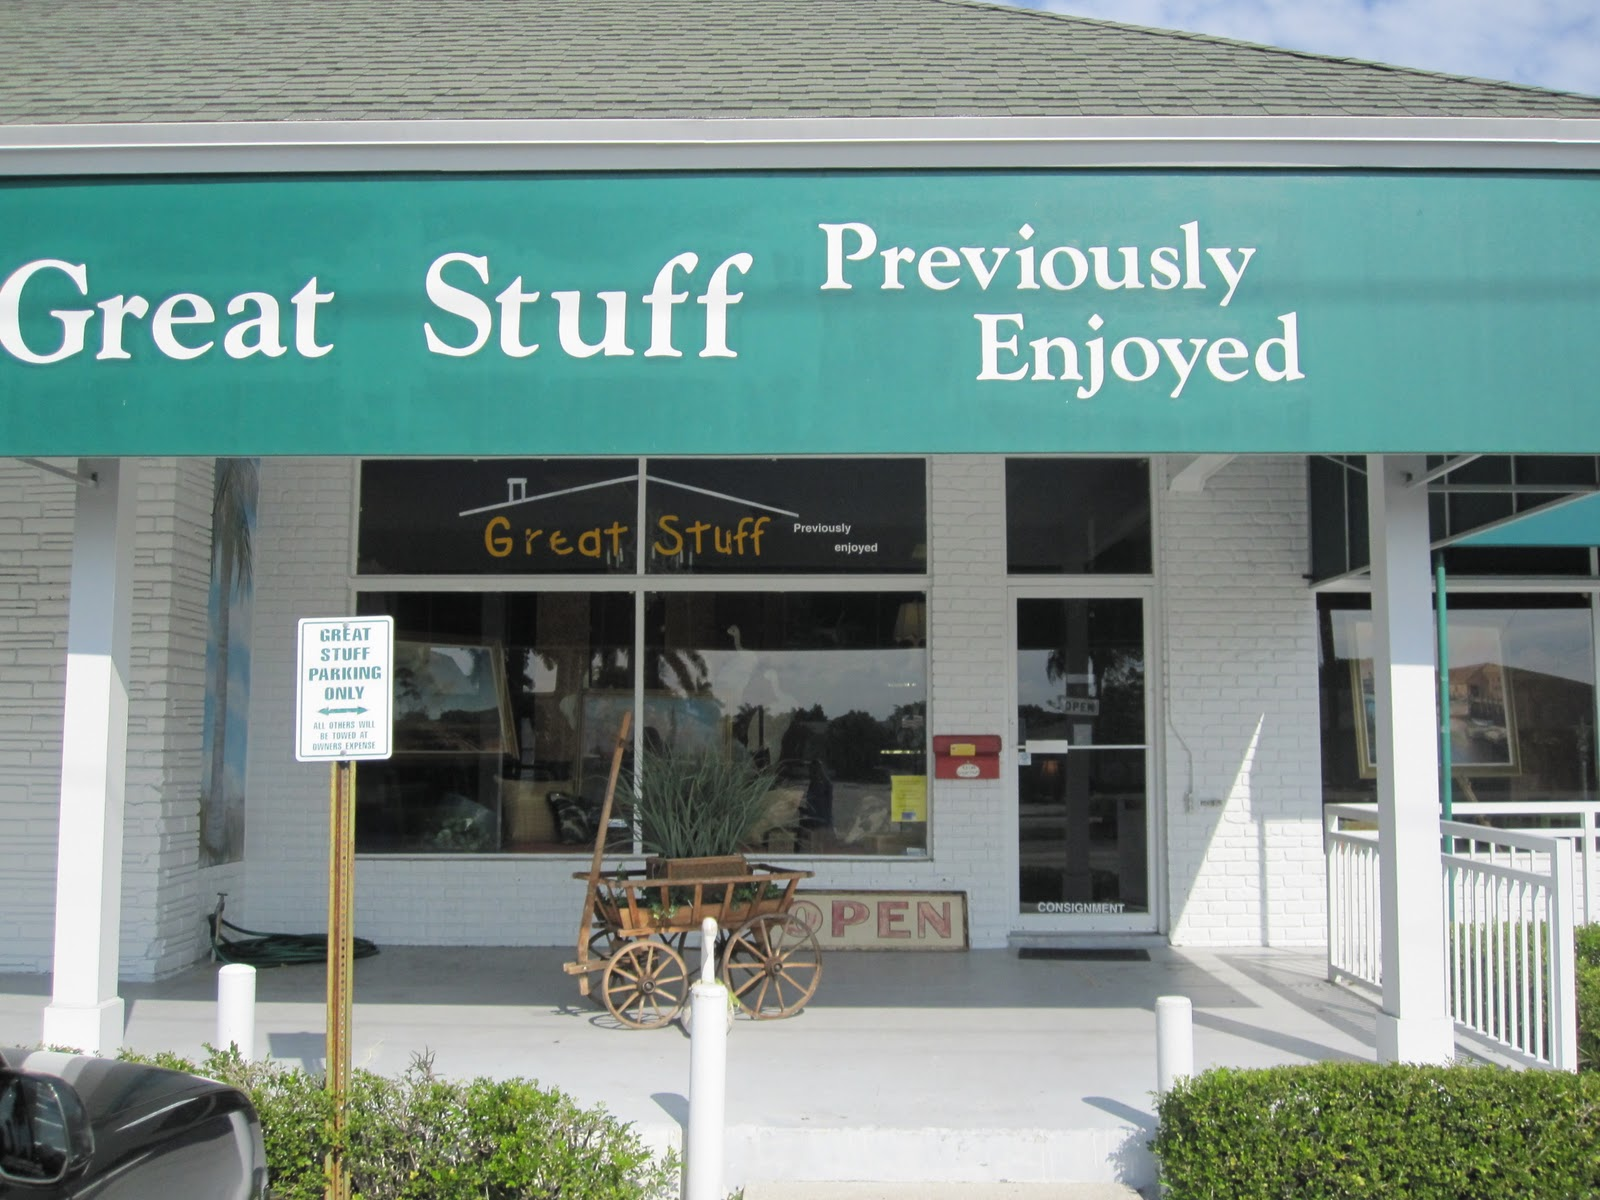 Great Stuff, At 901 B George Bush Blvd. In Delray Beach Was, Without A  Doubt, The Highlight Of Our Tour. It Is A Well Curated And Beautifully  Merchandised ...